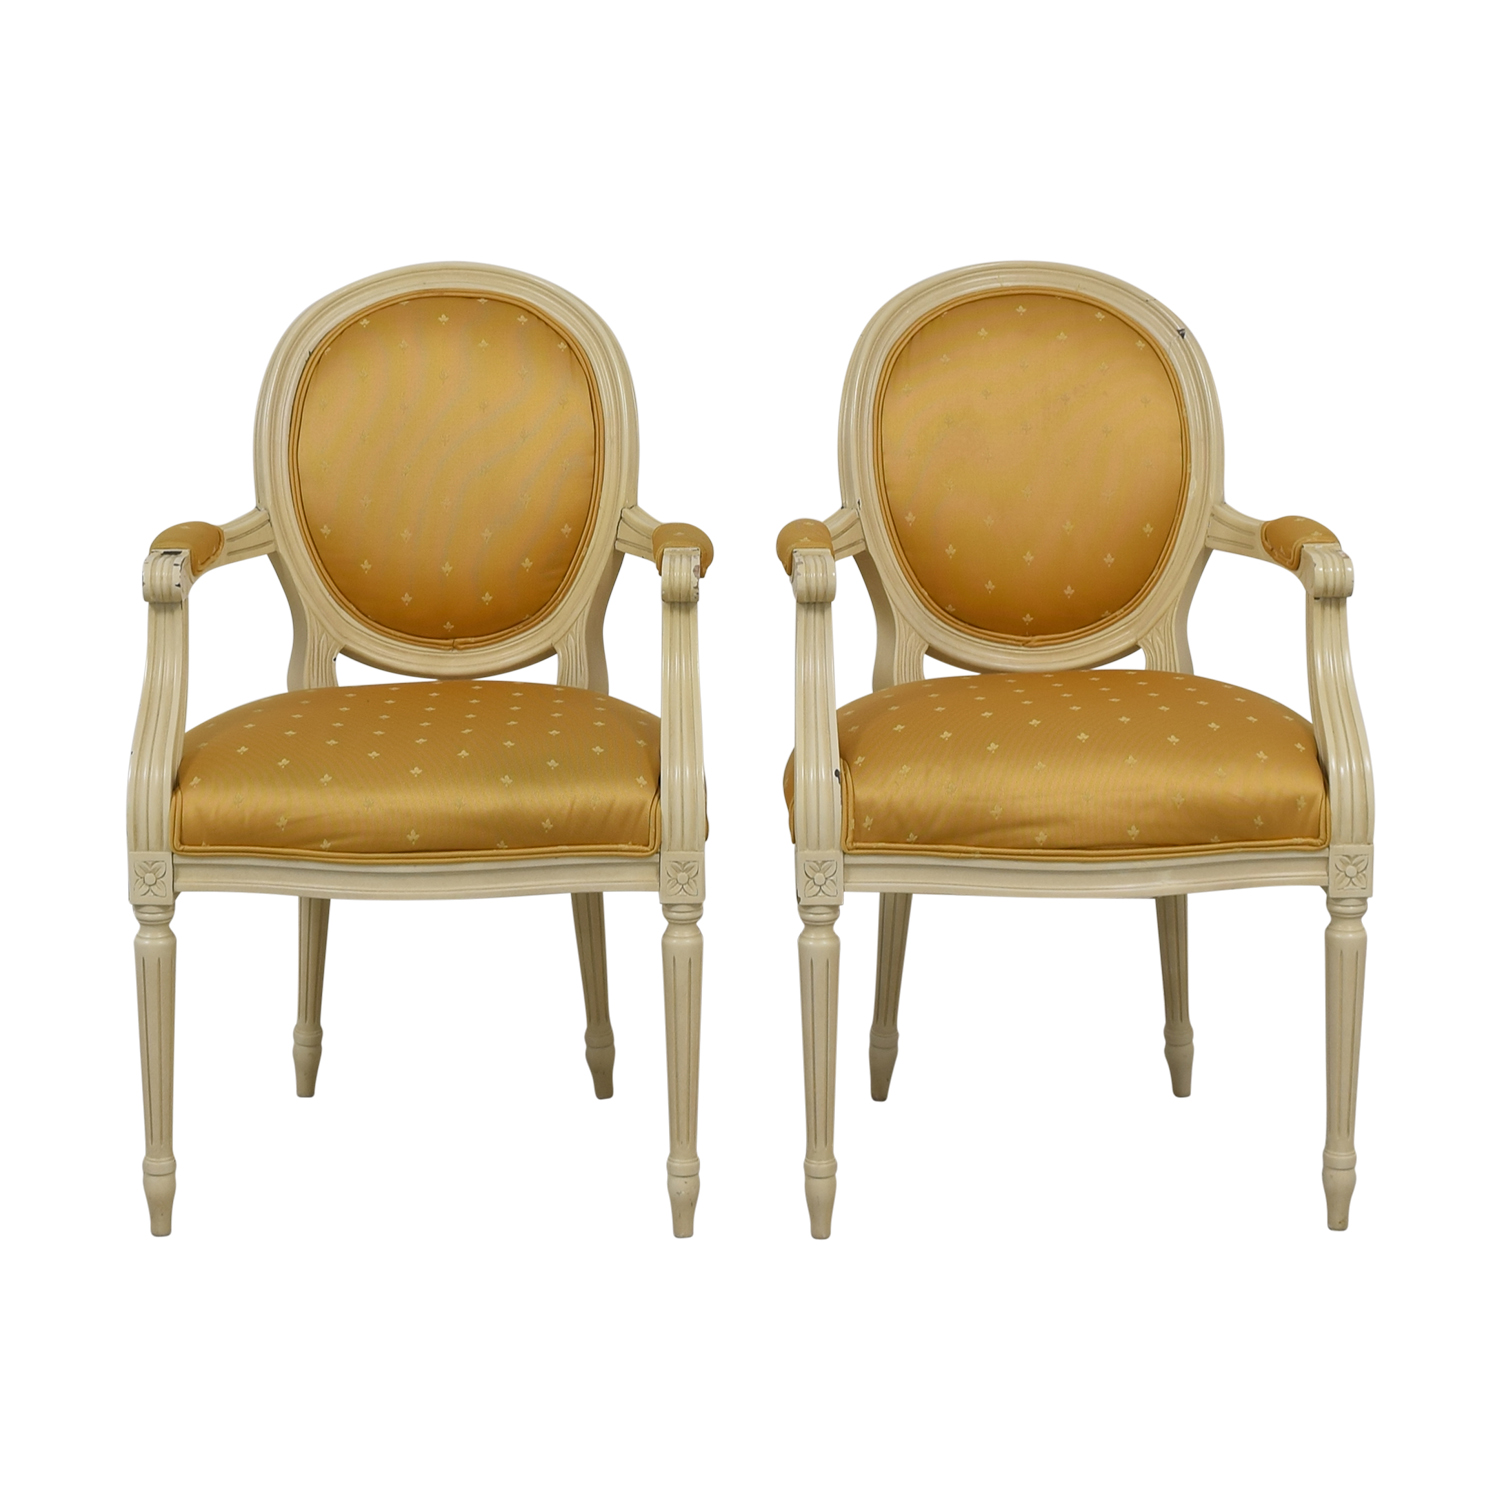 Gold Fleur De Lis Arm Dining Chairs used